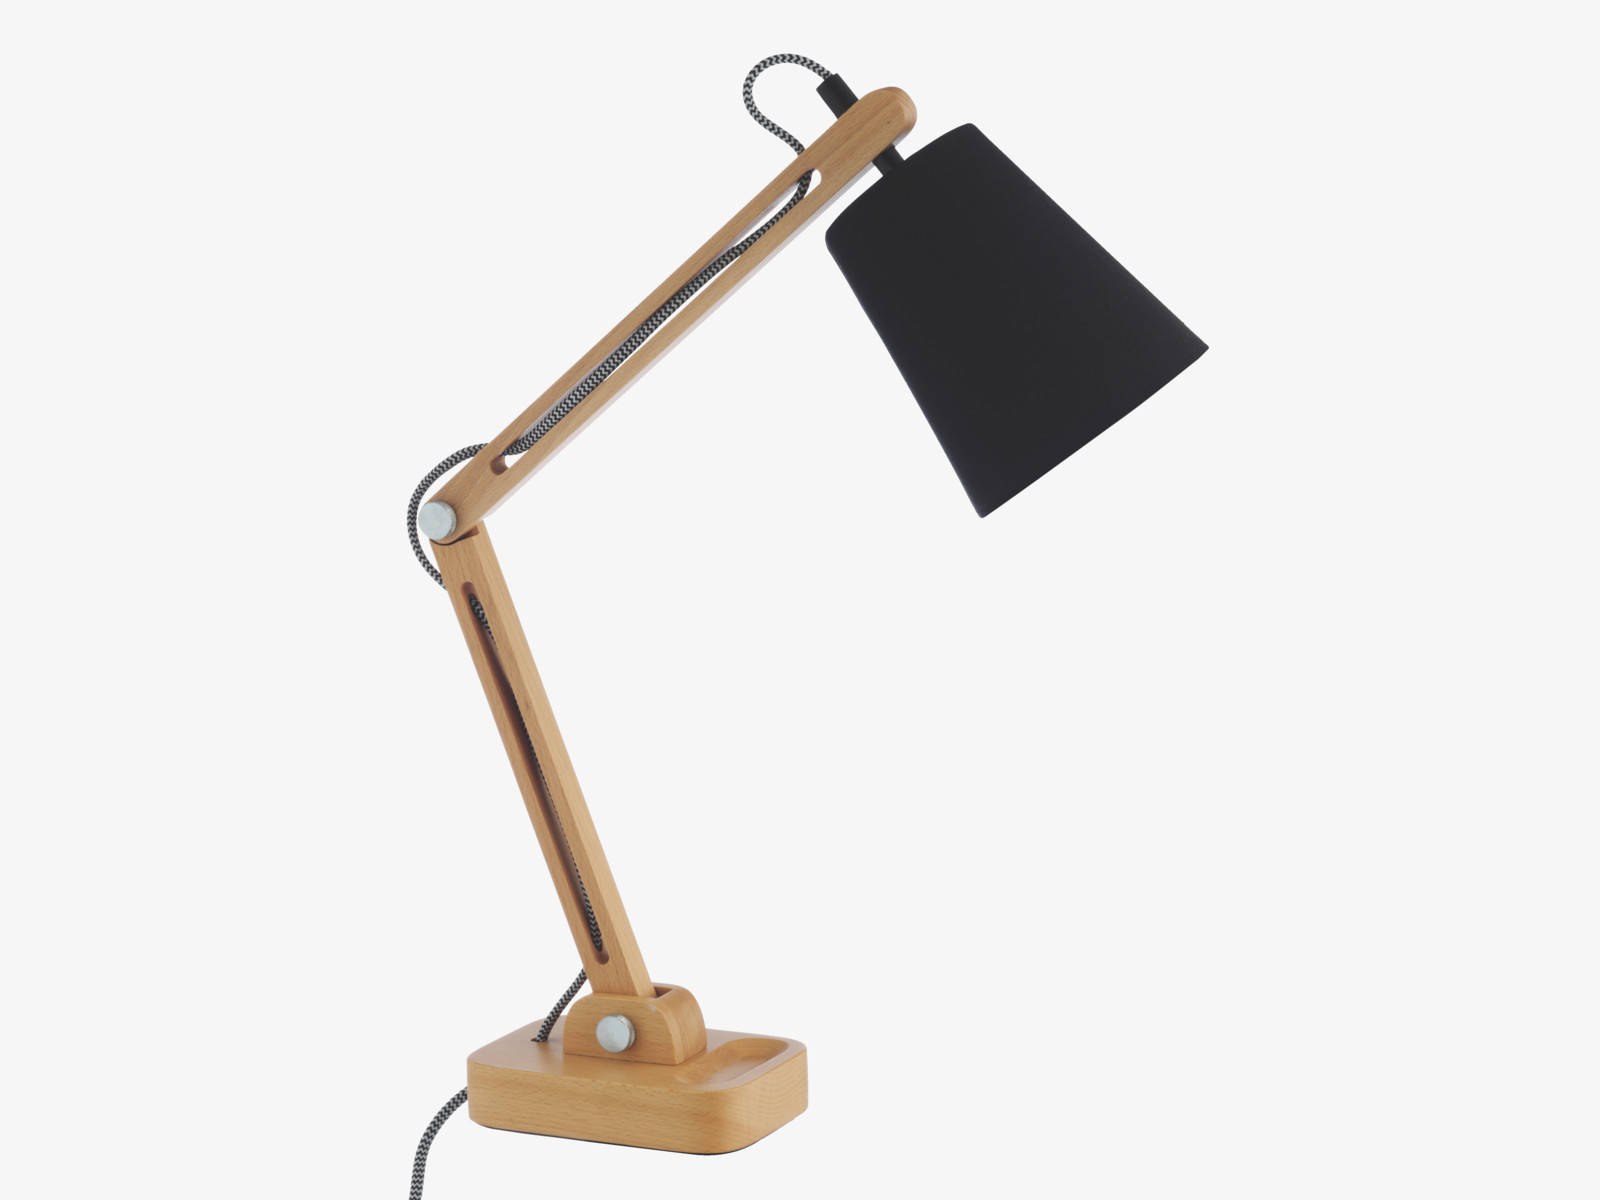 Wooden Table Lamps Designs Purchase Unique Wood Desk Lamp For Your Study Room